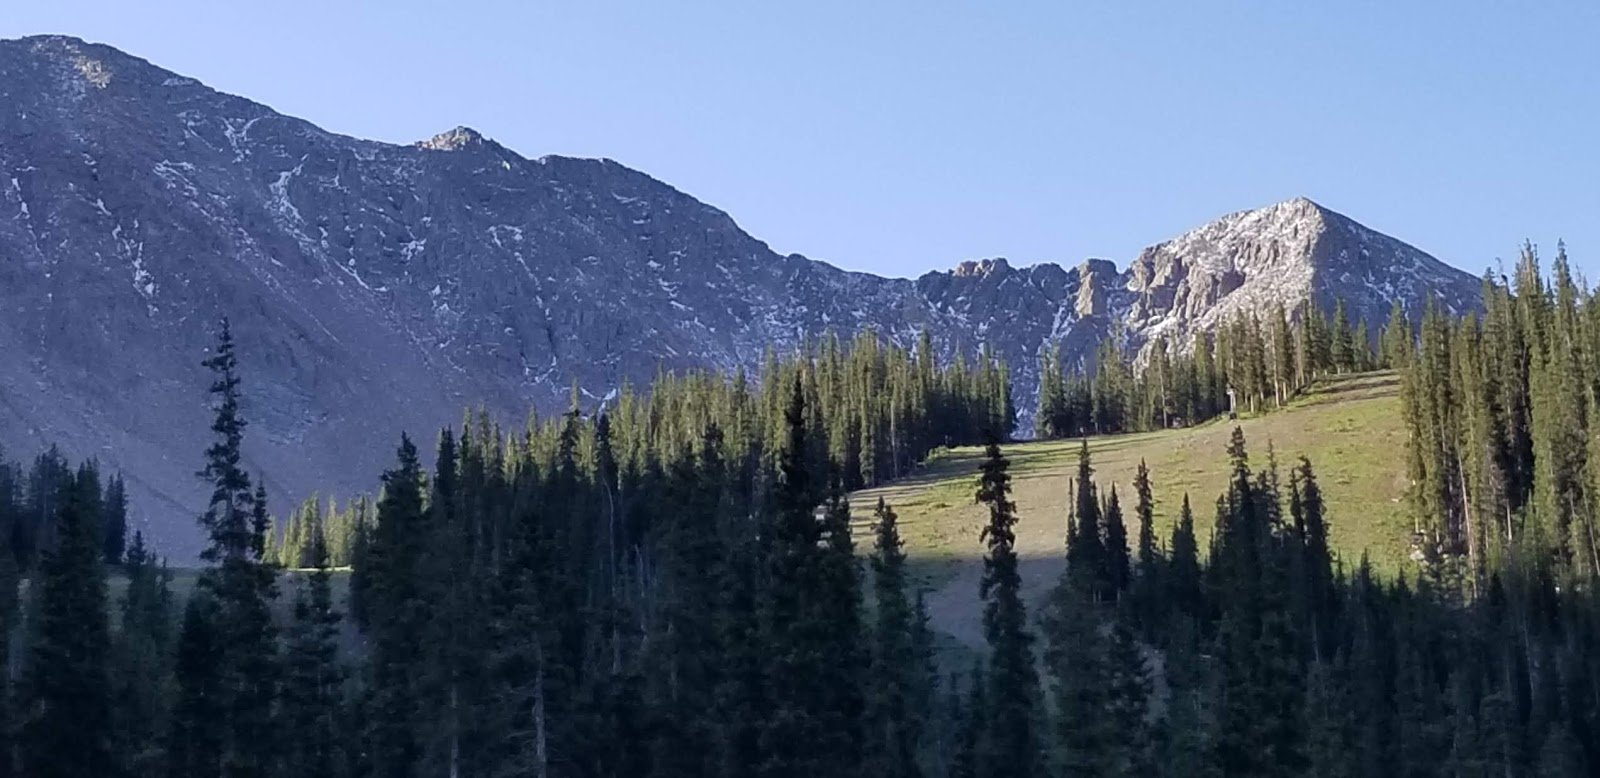 Not a lot yet, but the first snow has been spotted up high in Colorado above @Arapahoe_Basin Ski Area (look closely!). The ski season should be underway in the famous ski state in around two months so is it too soon to get excited? https://t.co/7tYPTzvGmT